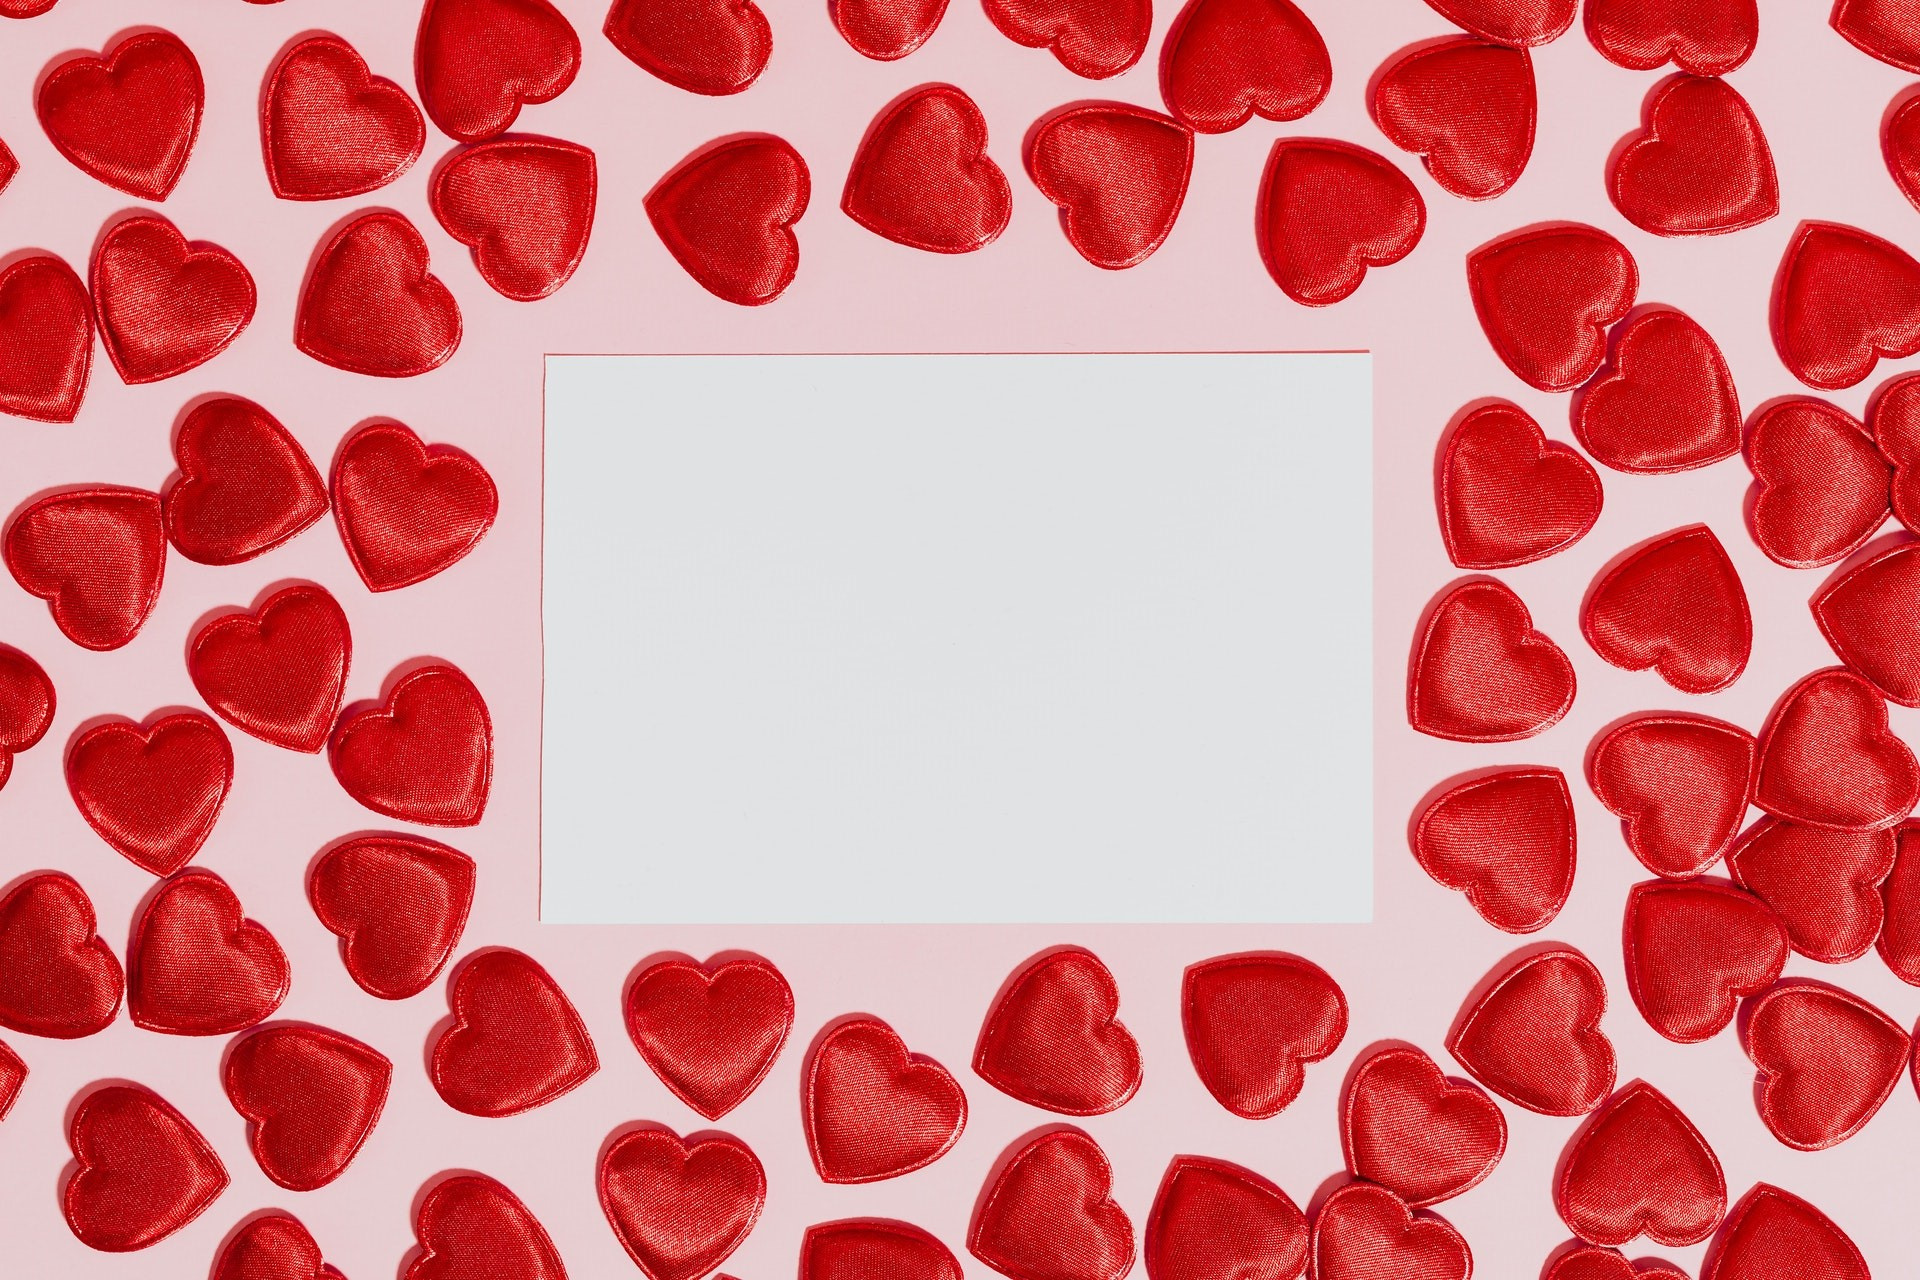 white blank piece of paper surrounded by re hearts on a pink background